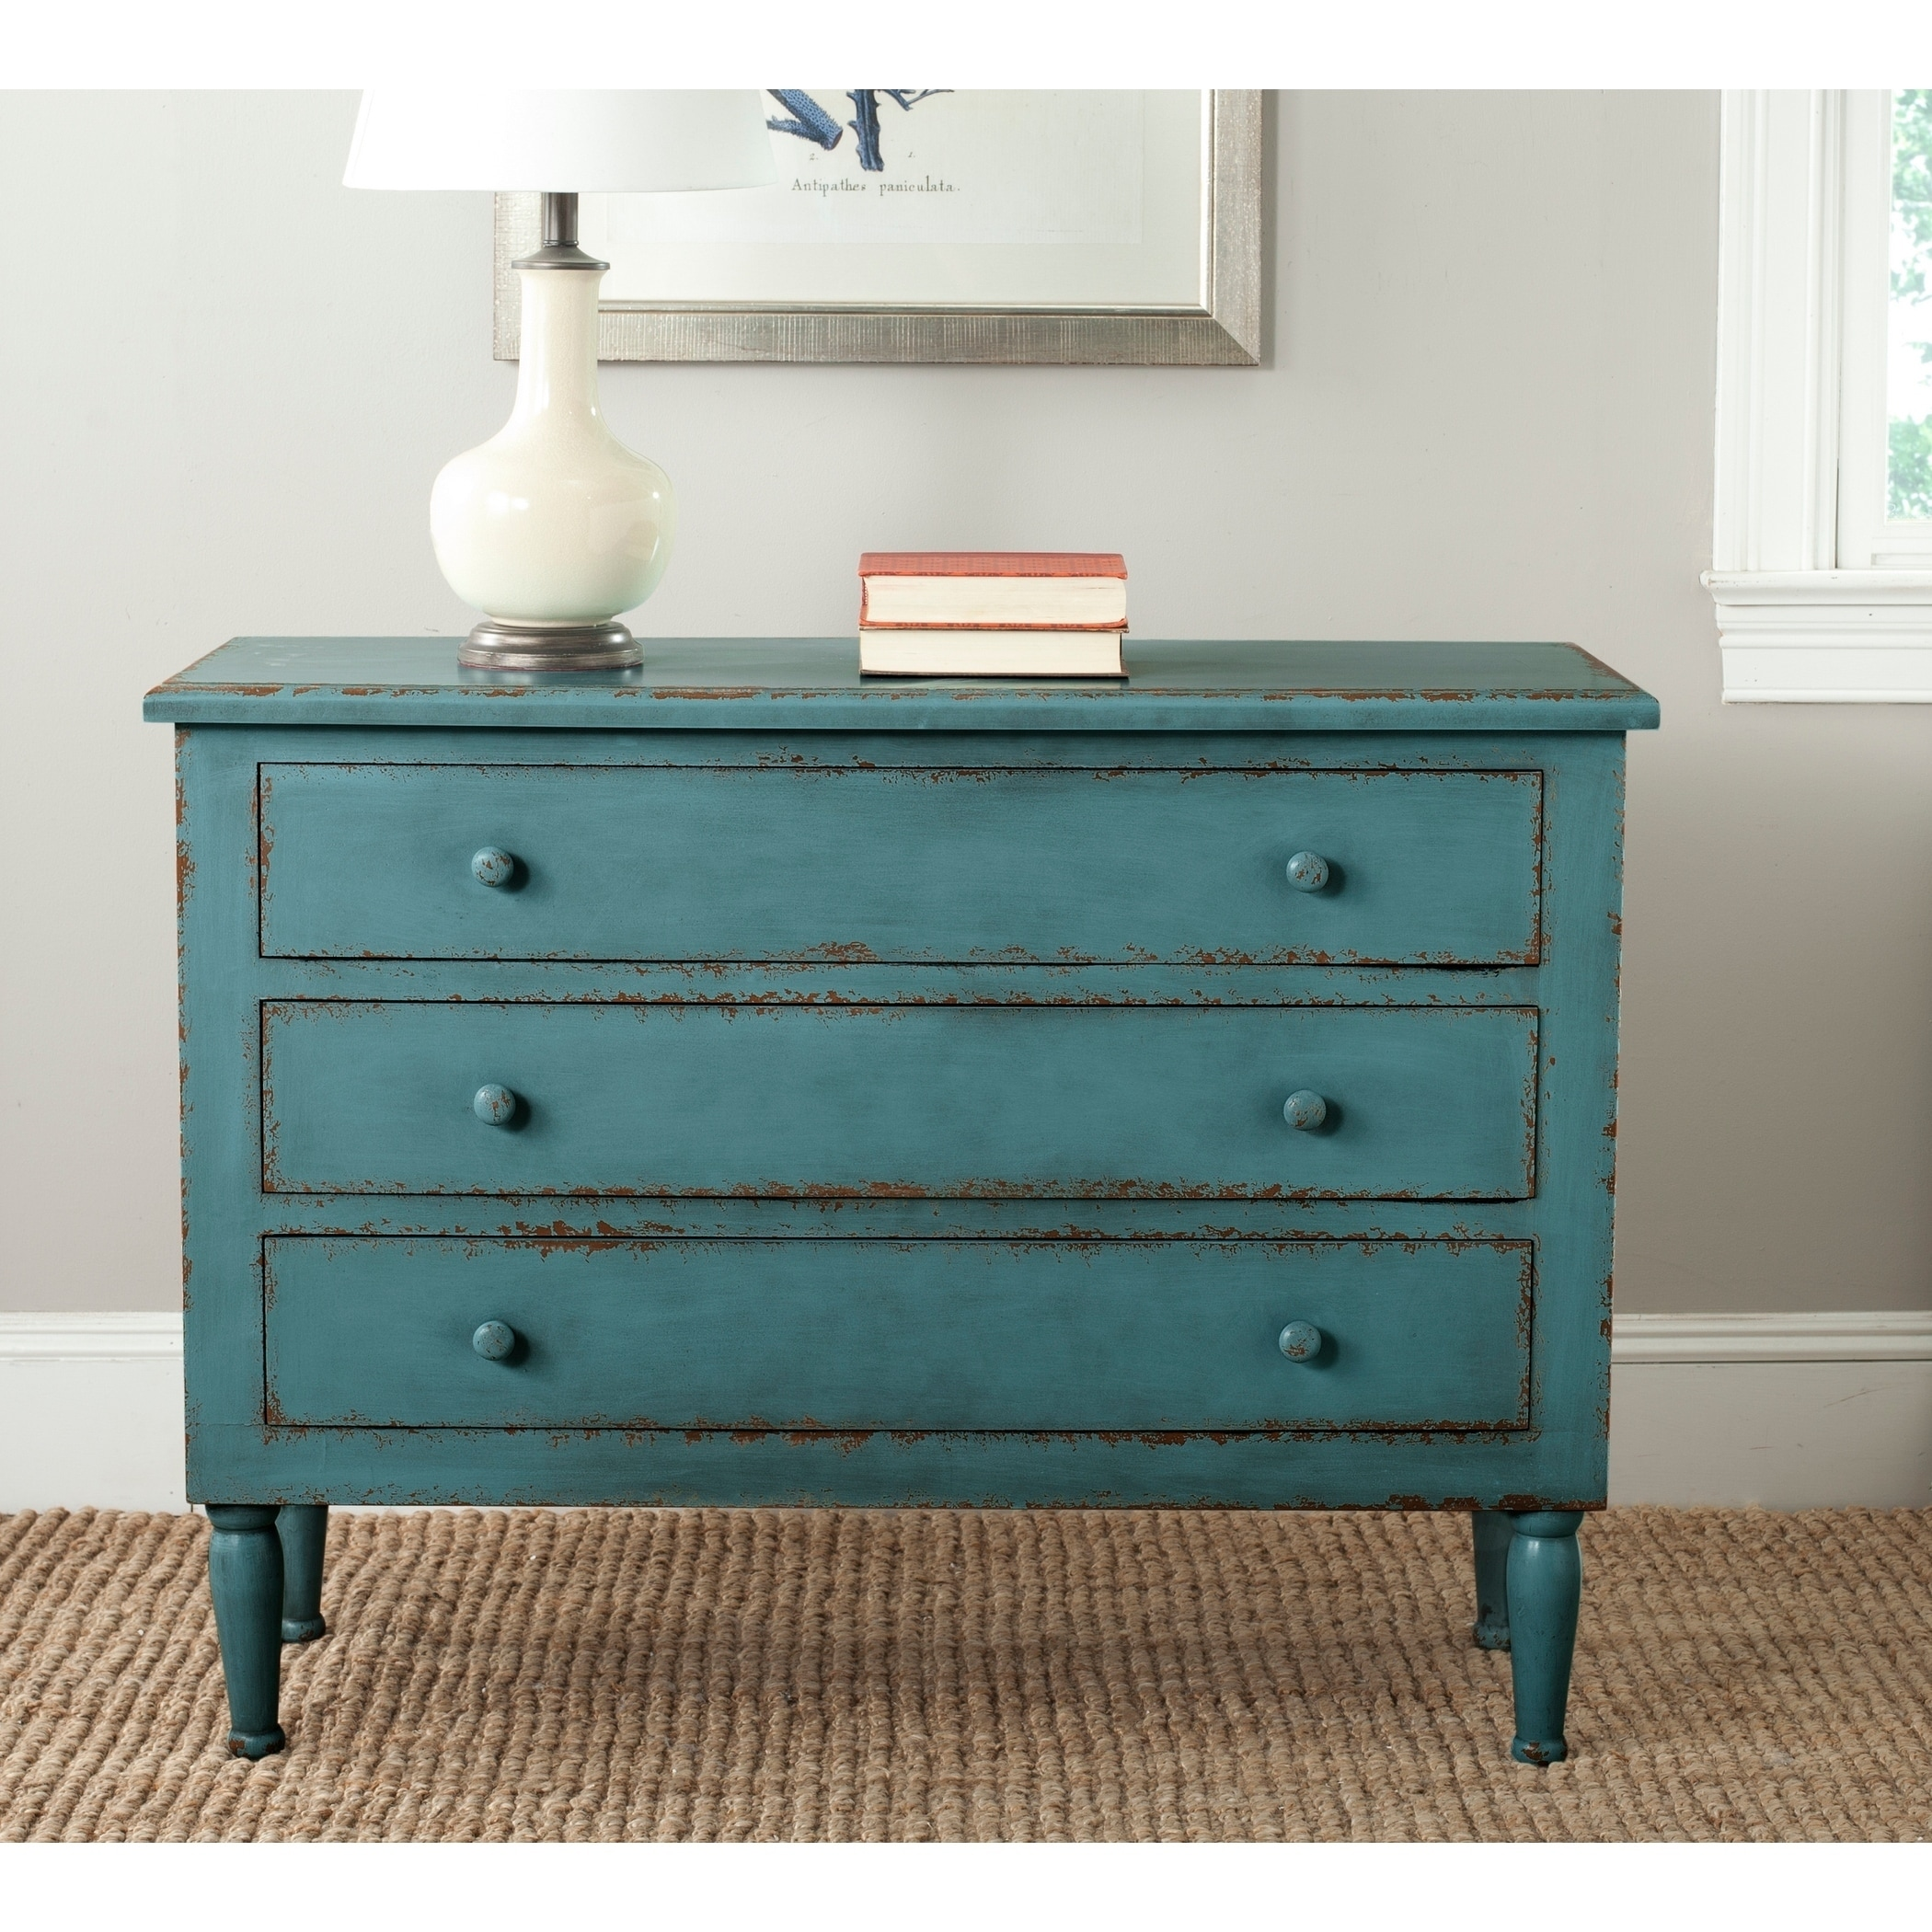 3c921da46f2 Shop Safavieh Talbet Distressed Blue 3-Drawer Storage Chest - On Sale -  Free Shipping Today - Overstock - 11408347